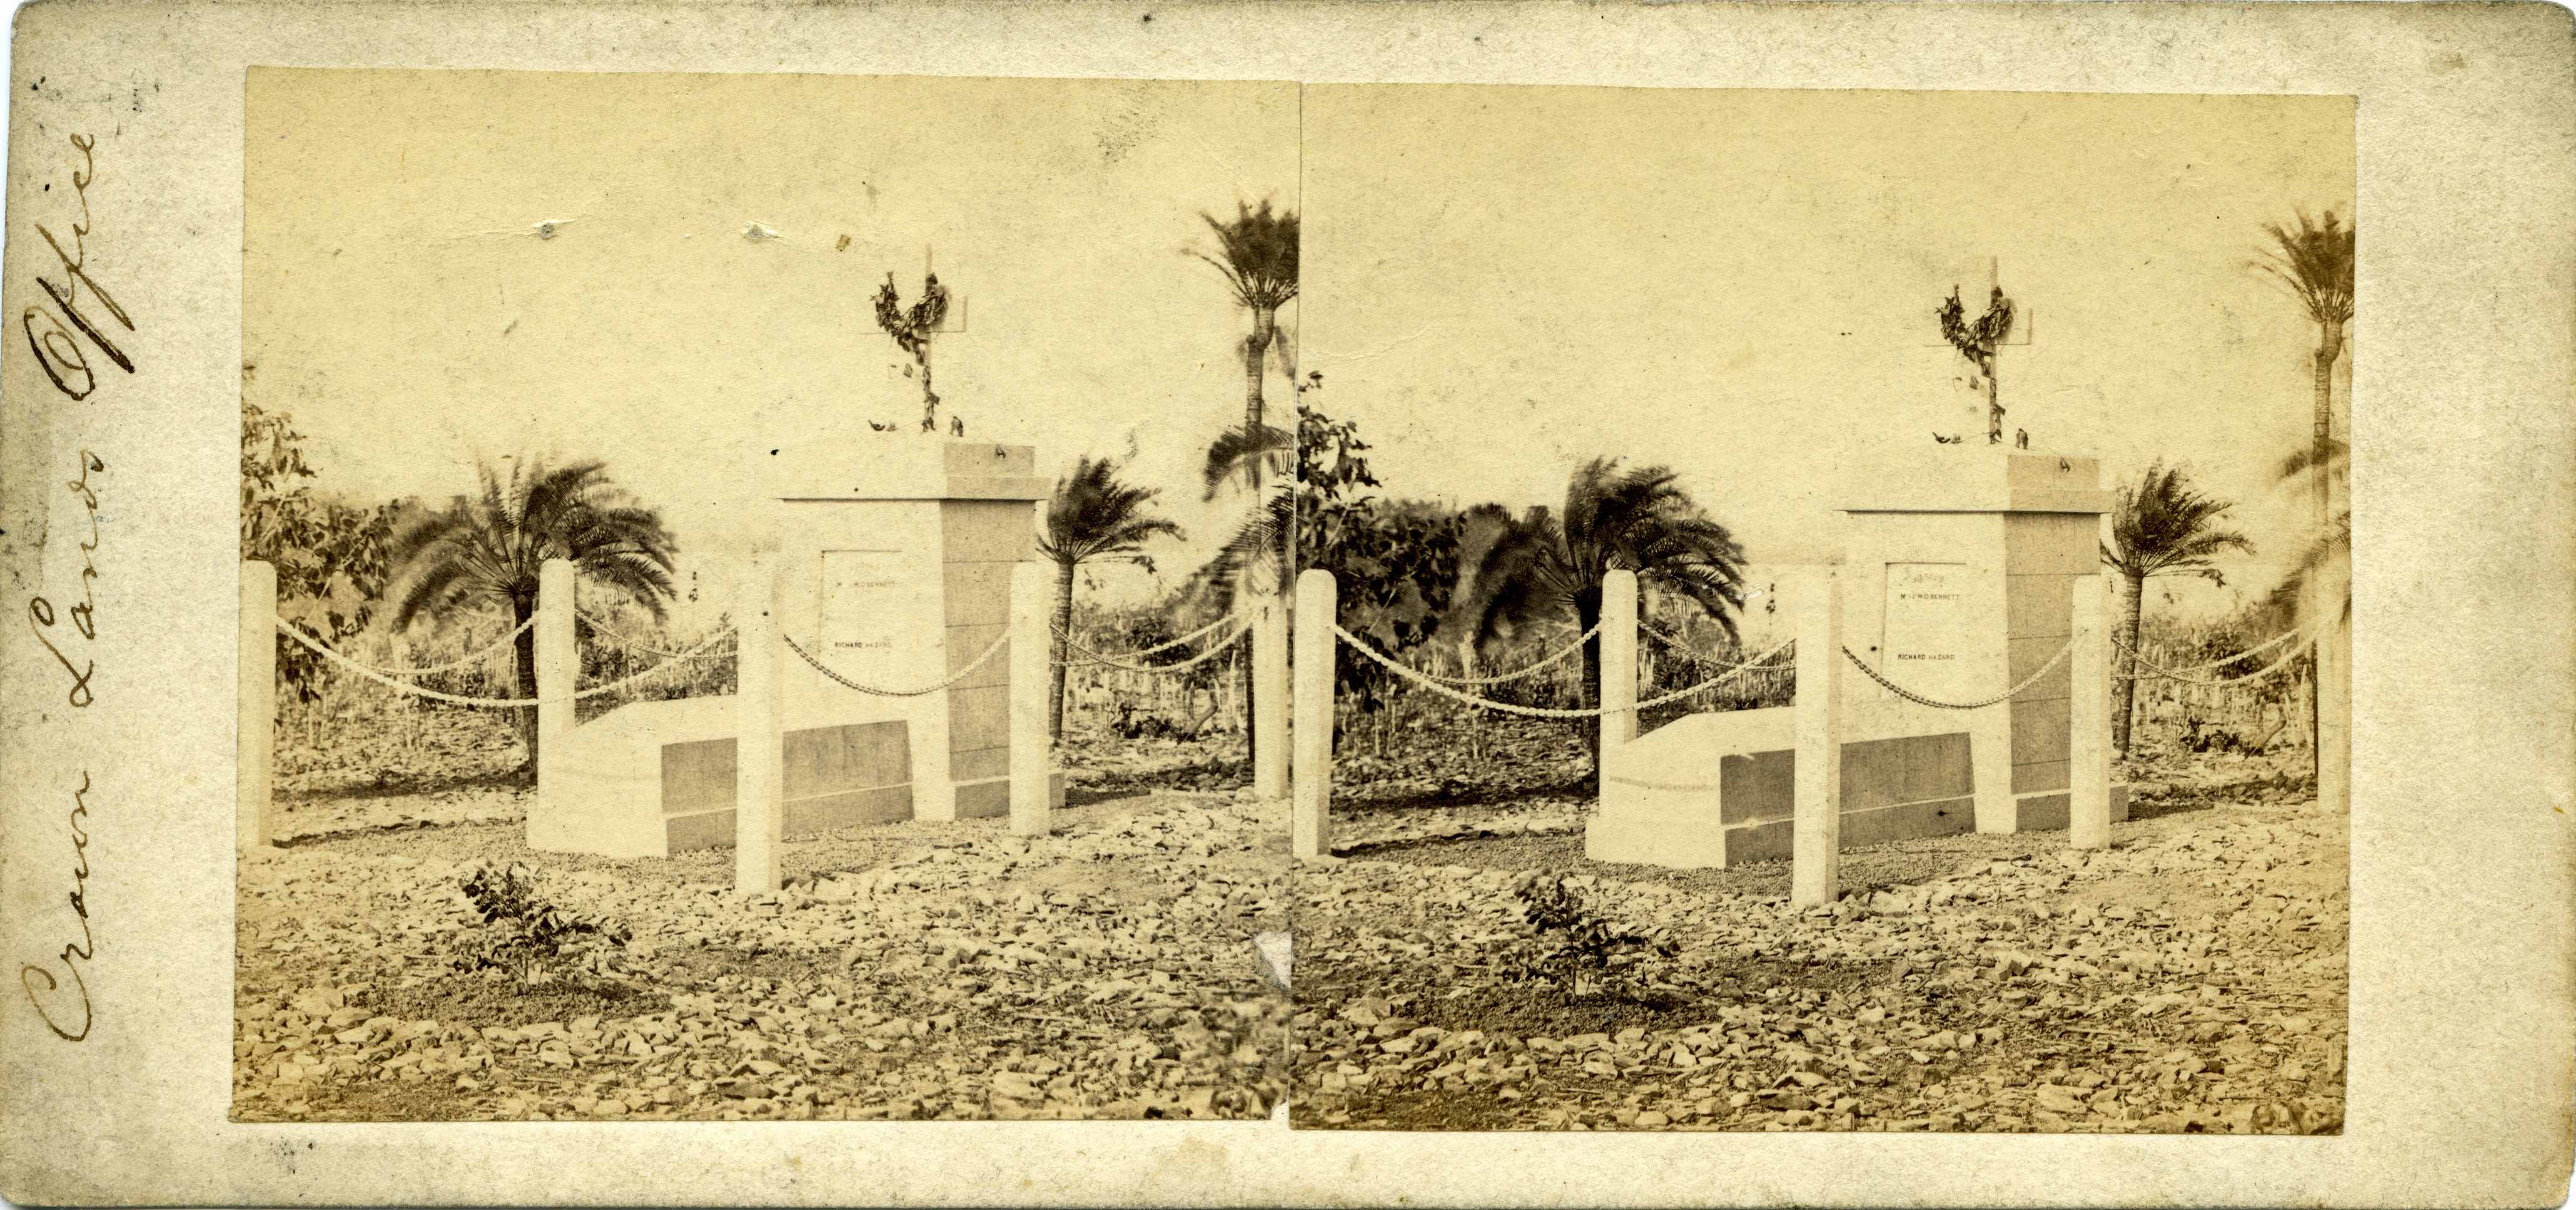 Stereoscopic image of Graves of JWO Bennett and Richard Hazard, Fort Hill, 1869